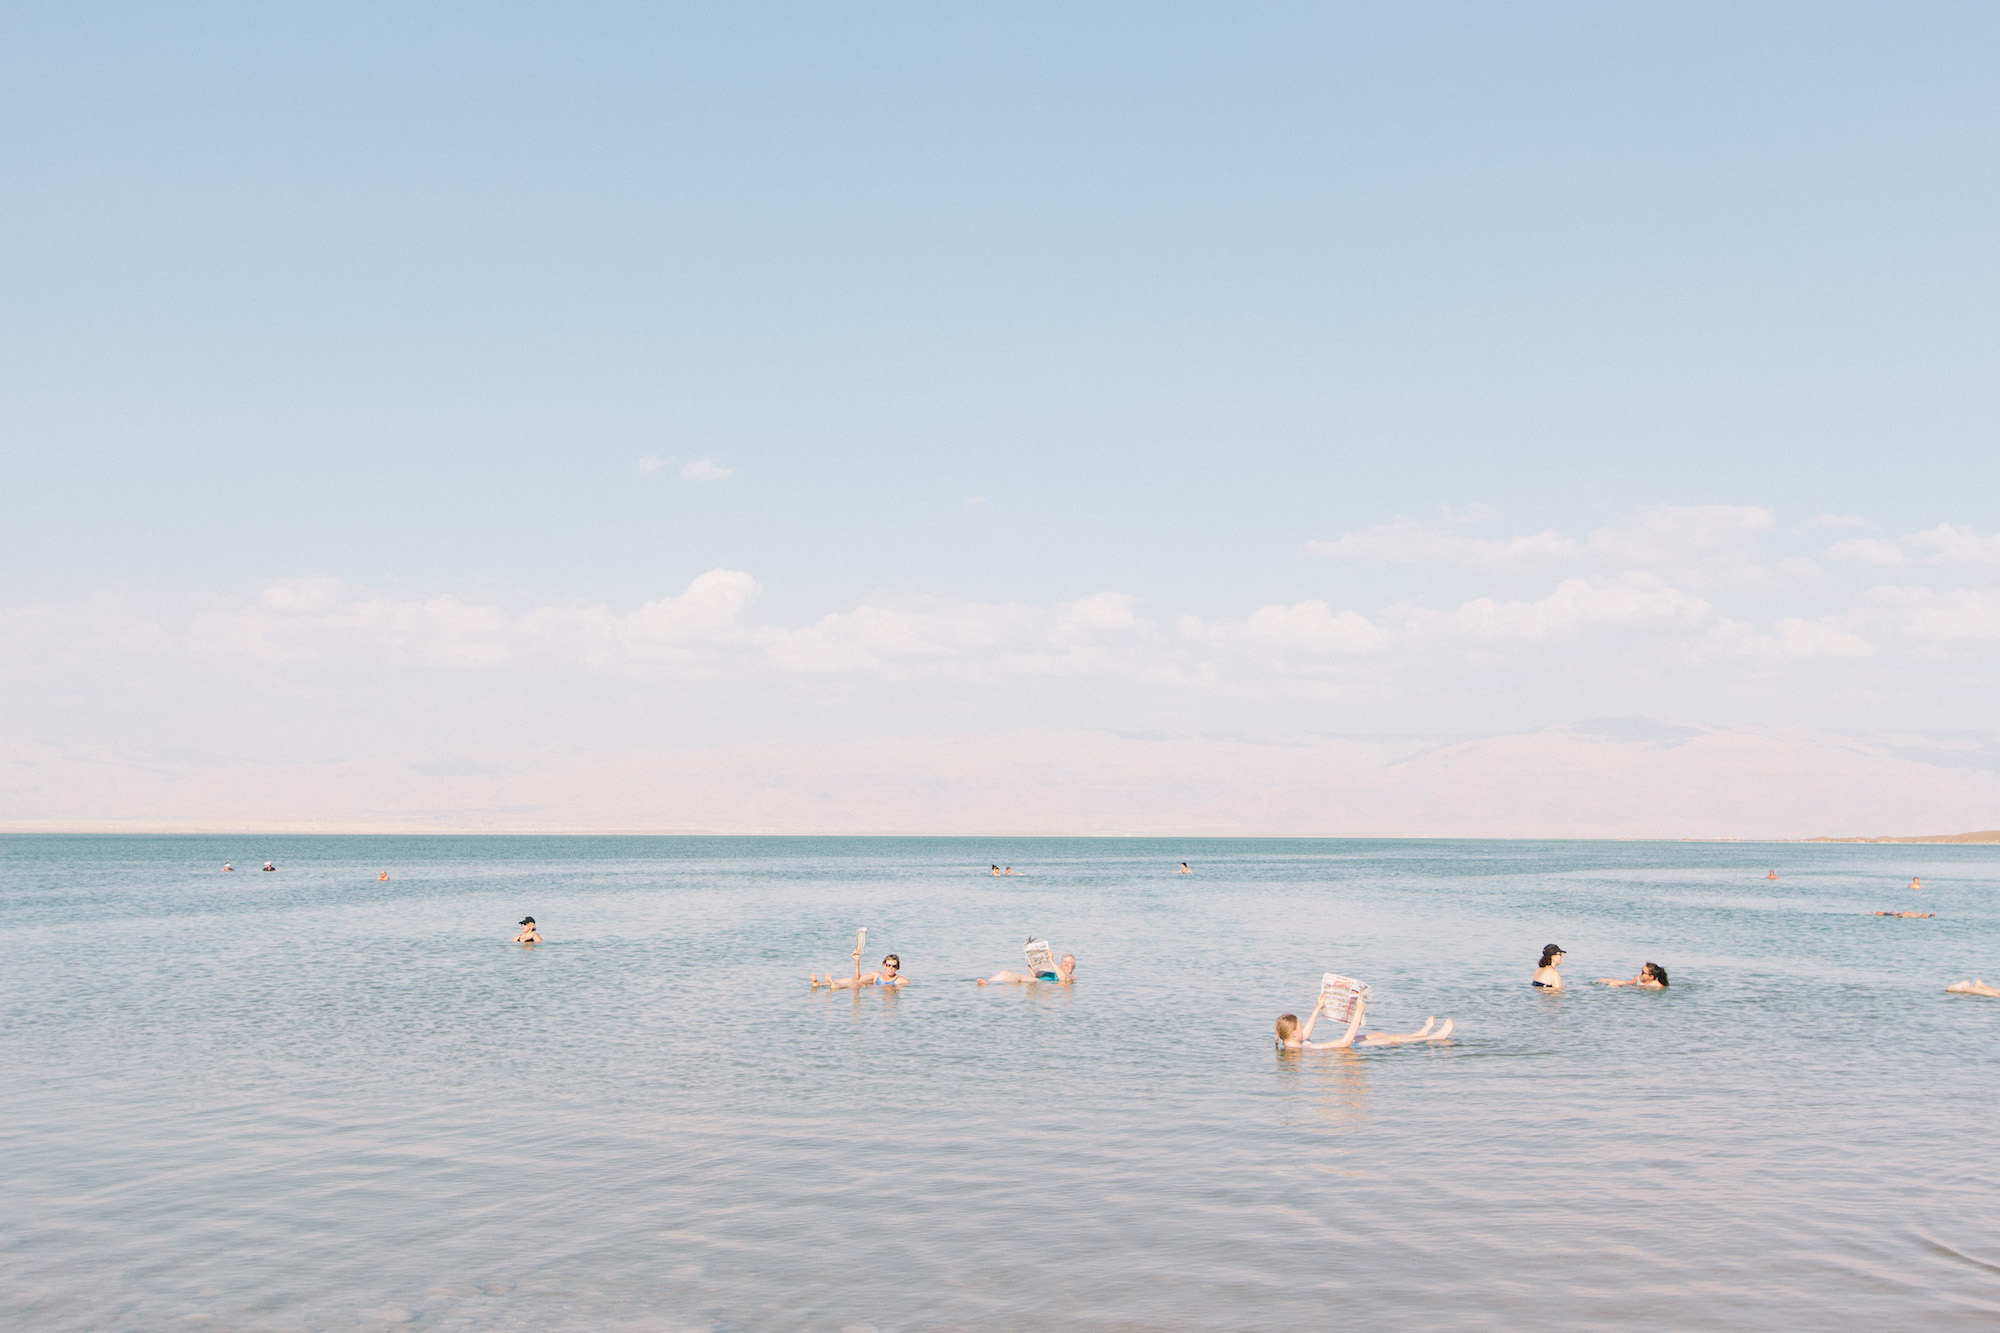 Dead Sea - Swimming in the Dead Sea is completely surreal. The salt levels are so high, the water almost feels oily and you really, really need to make sure you don't have any cuts! Of course you can also float in it and read a newspaper if you must.